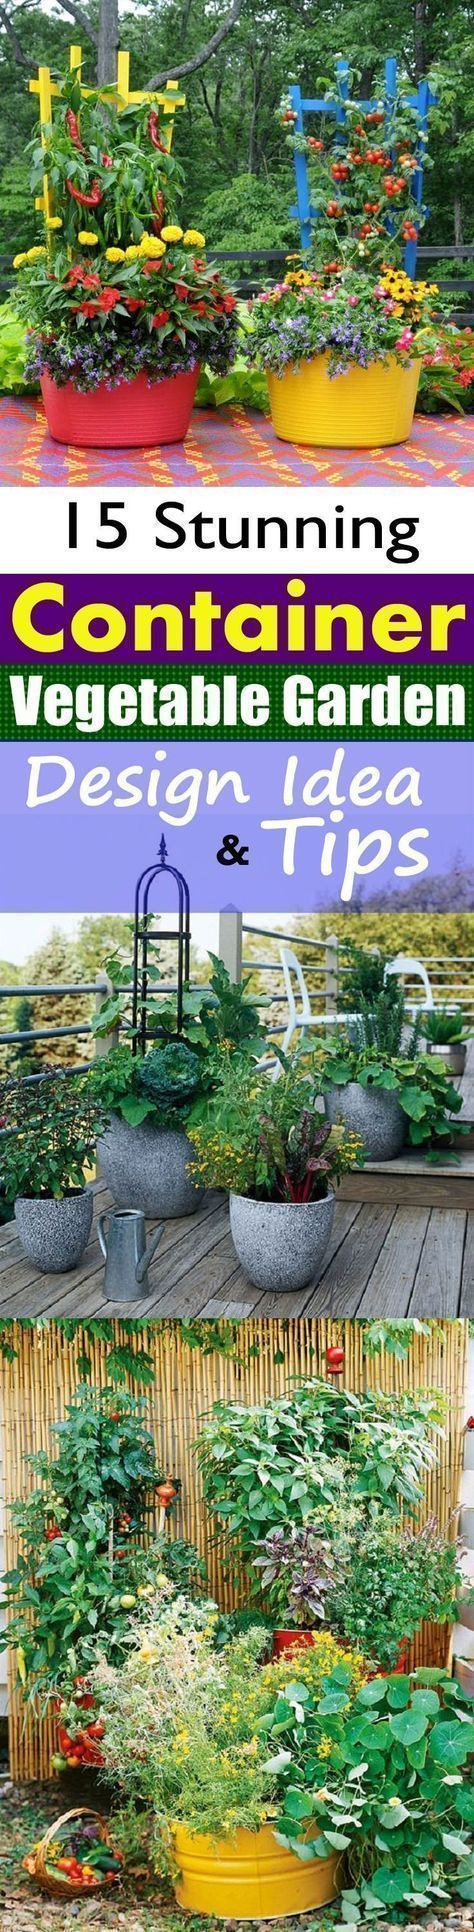 Create a Container Ve able Garden container gardening container gardening ideas container gardening tips